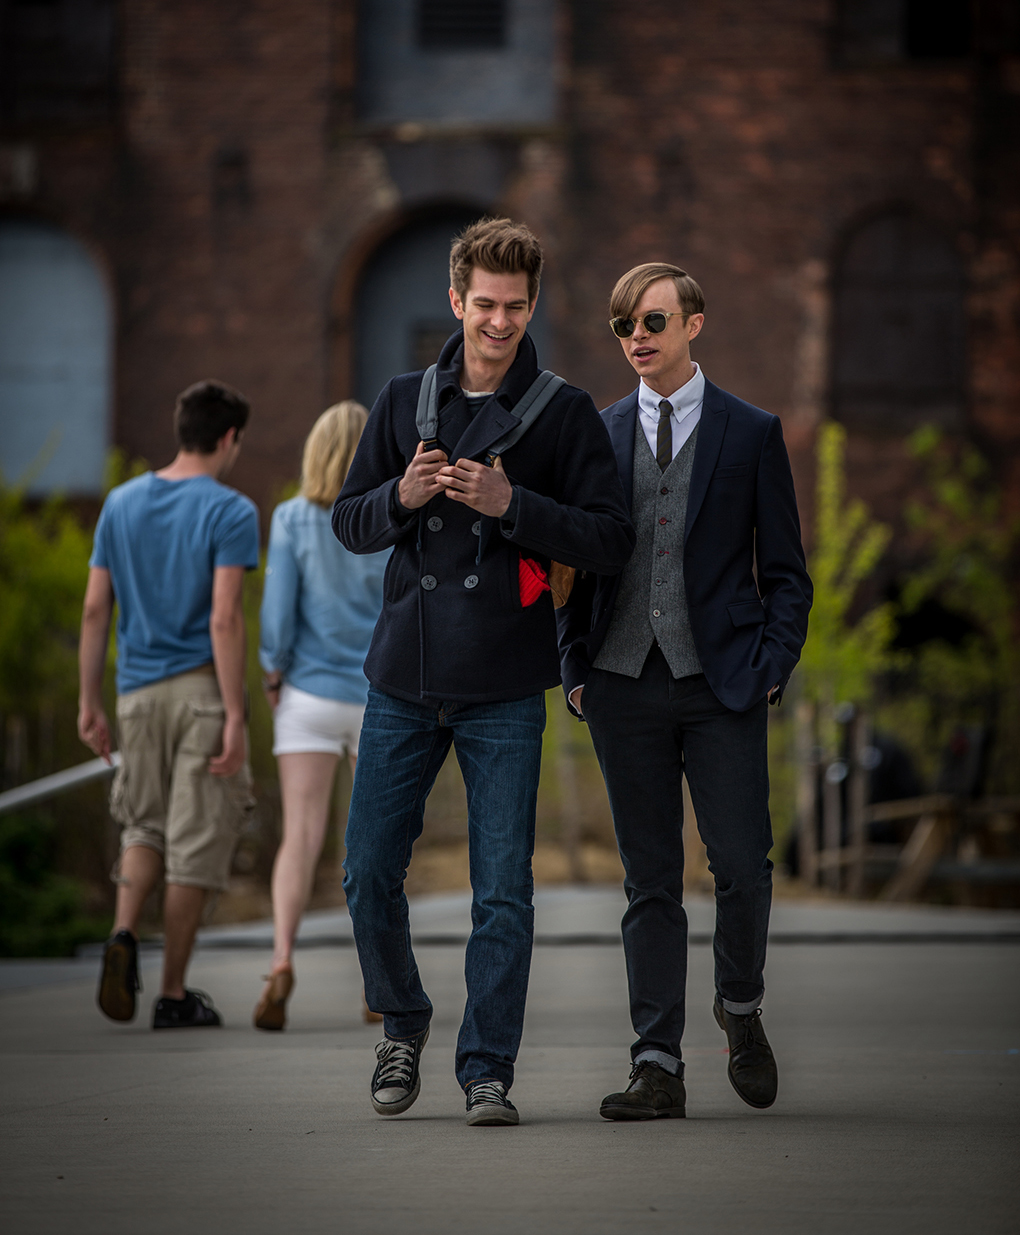 Theamazingspiderman2_still_1020